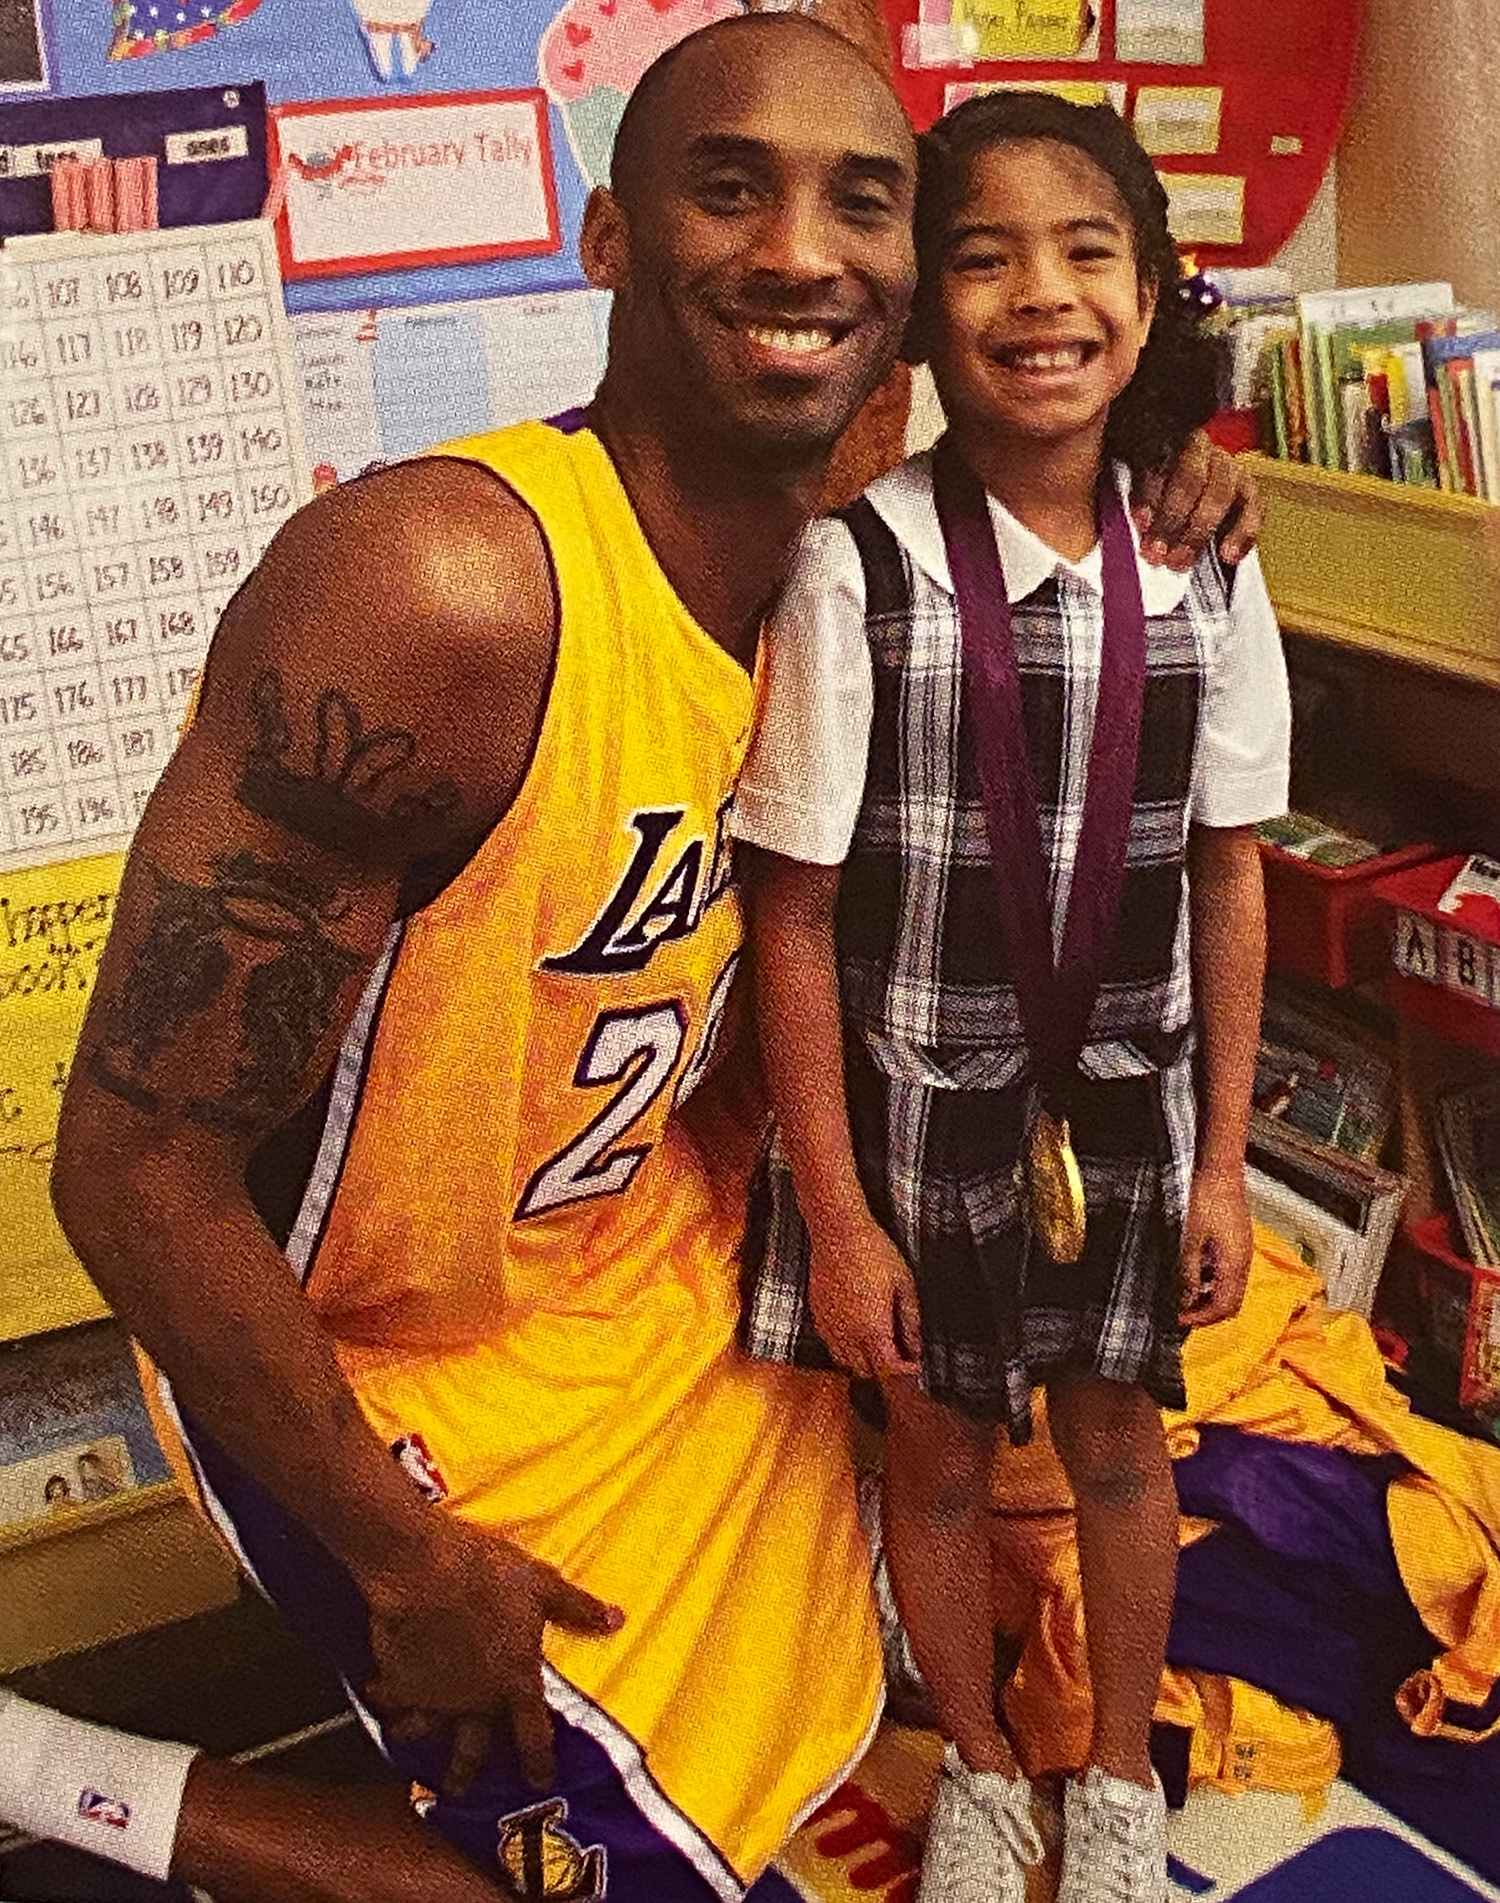 Kobe Bryant Dressed in Full Lakers Uniform for Career Day at Gianna's School